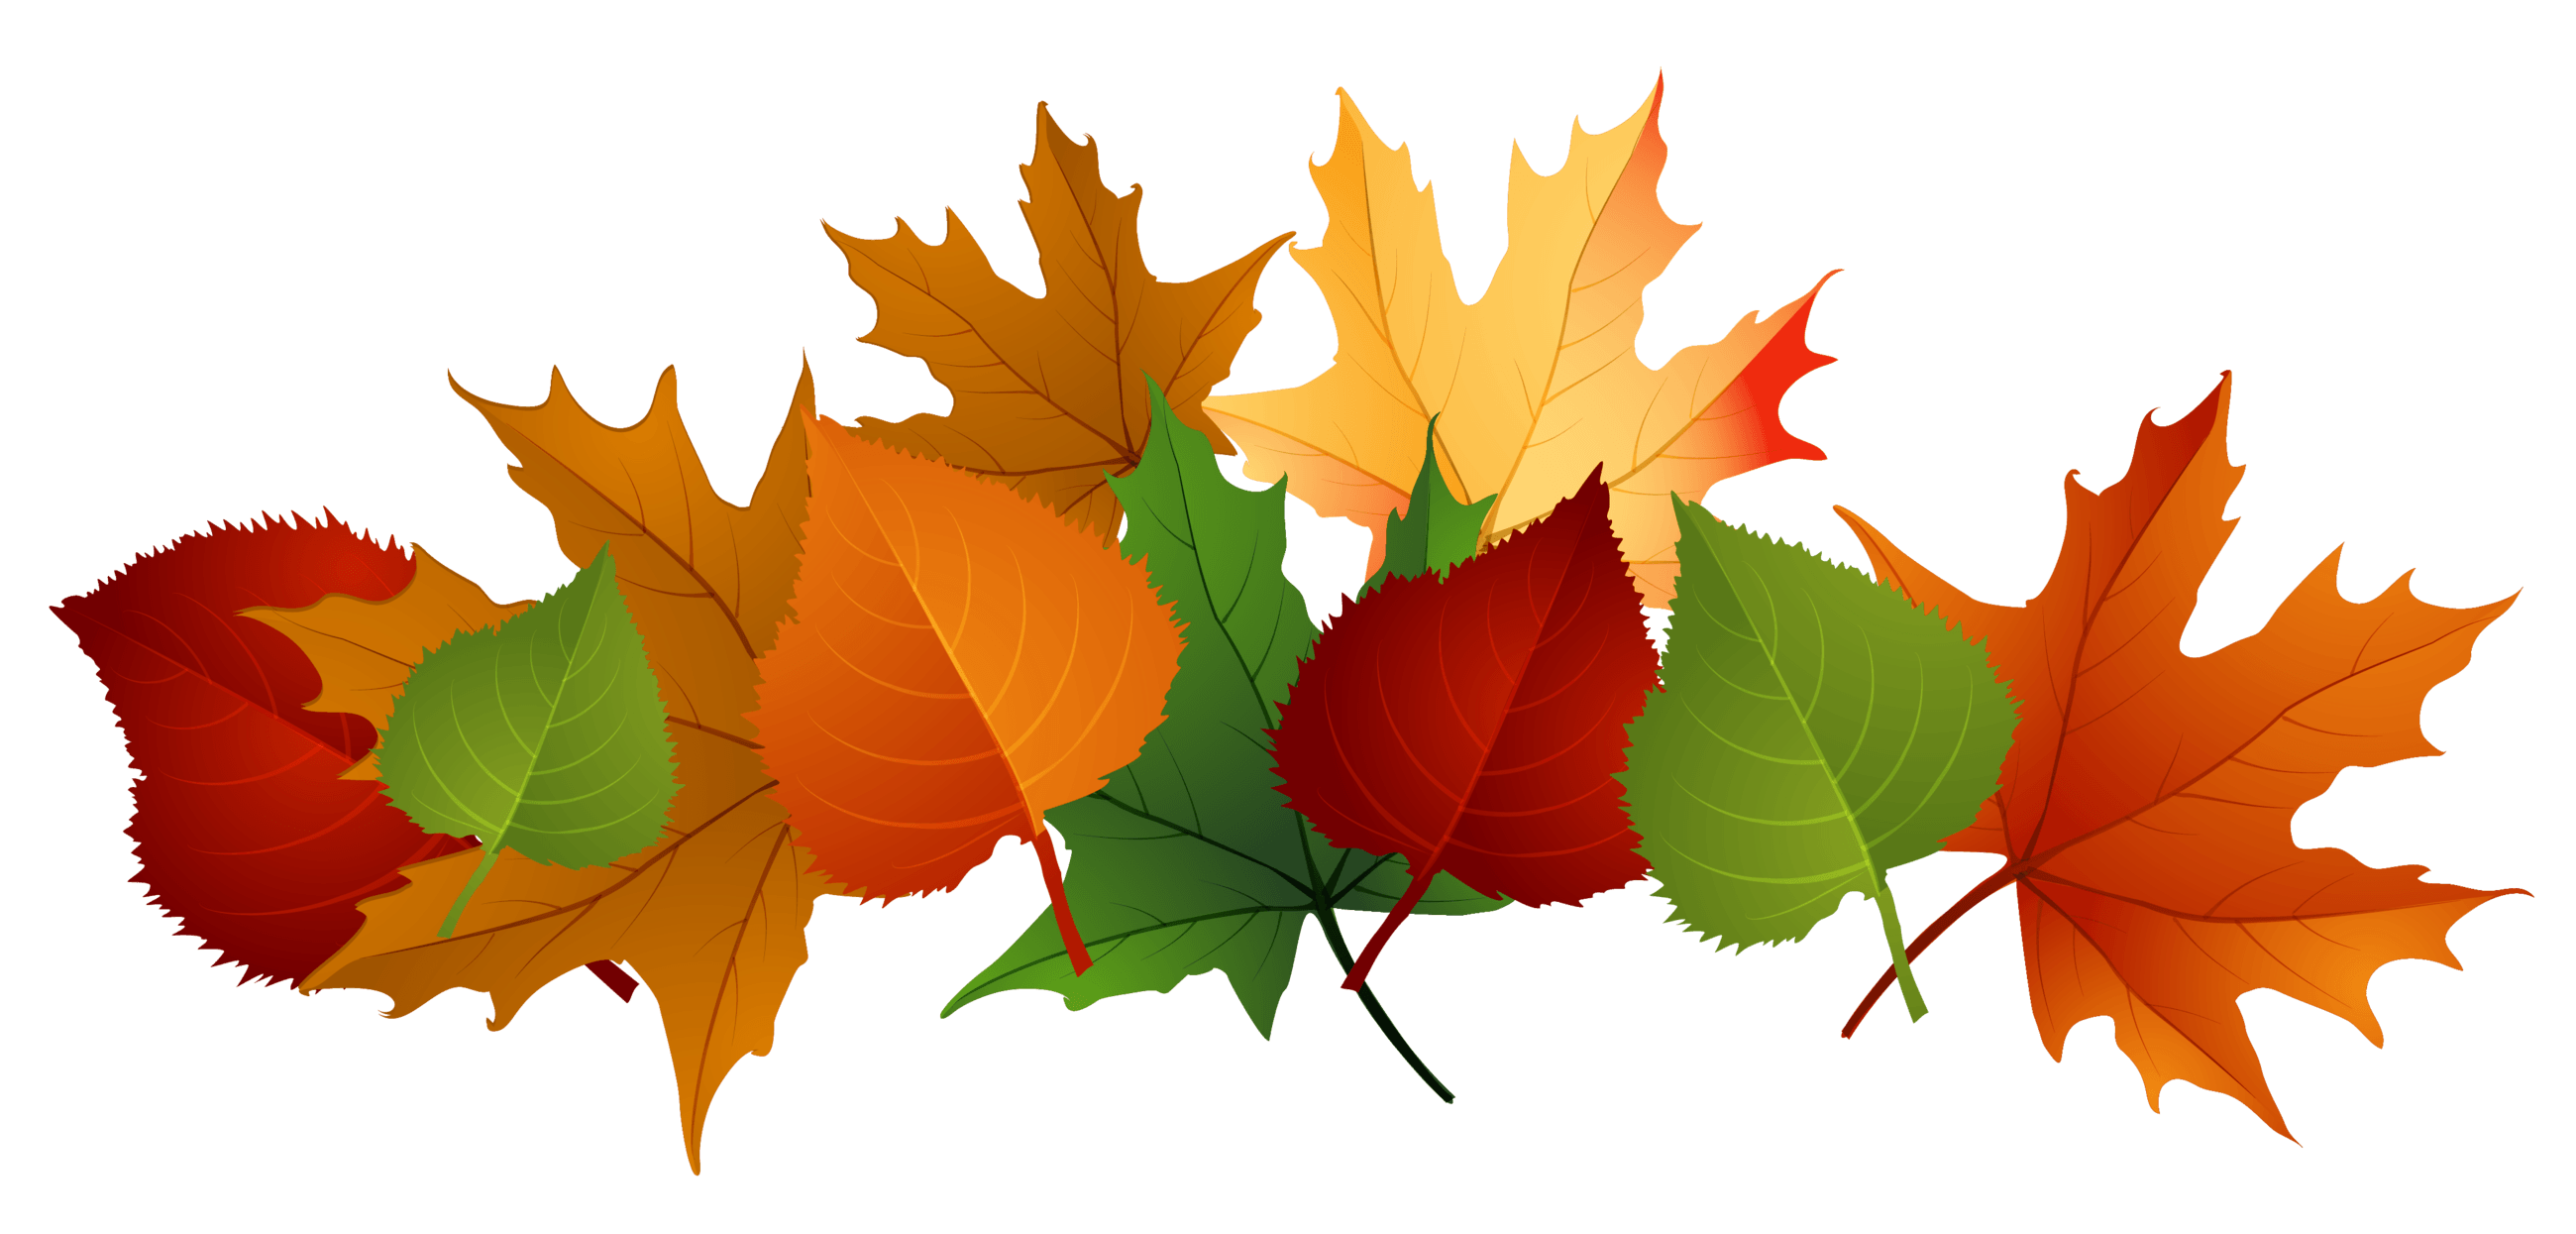 November fall background clipart images gallery for free.